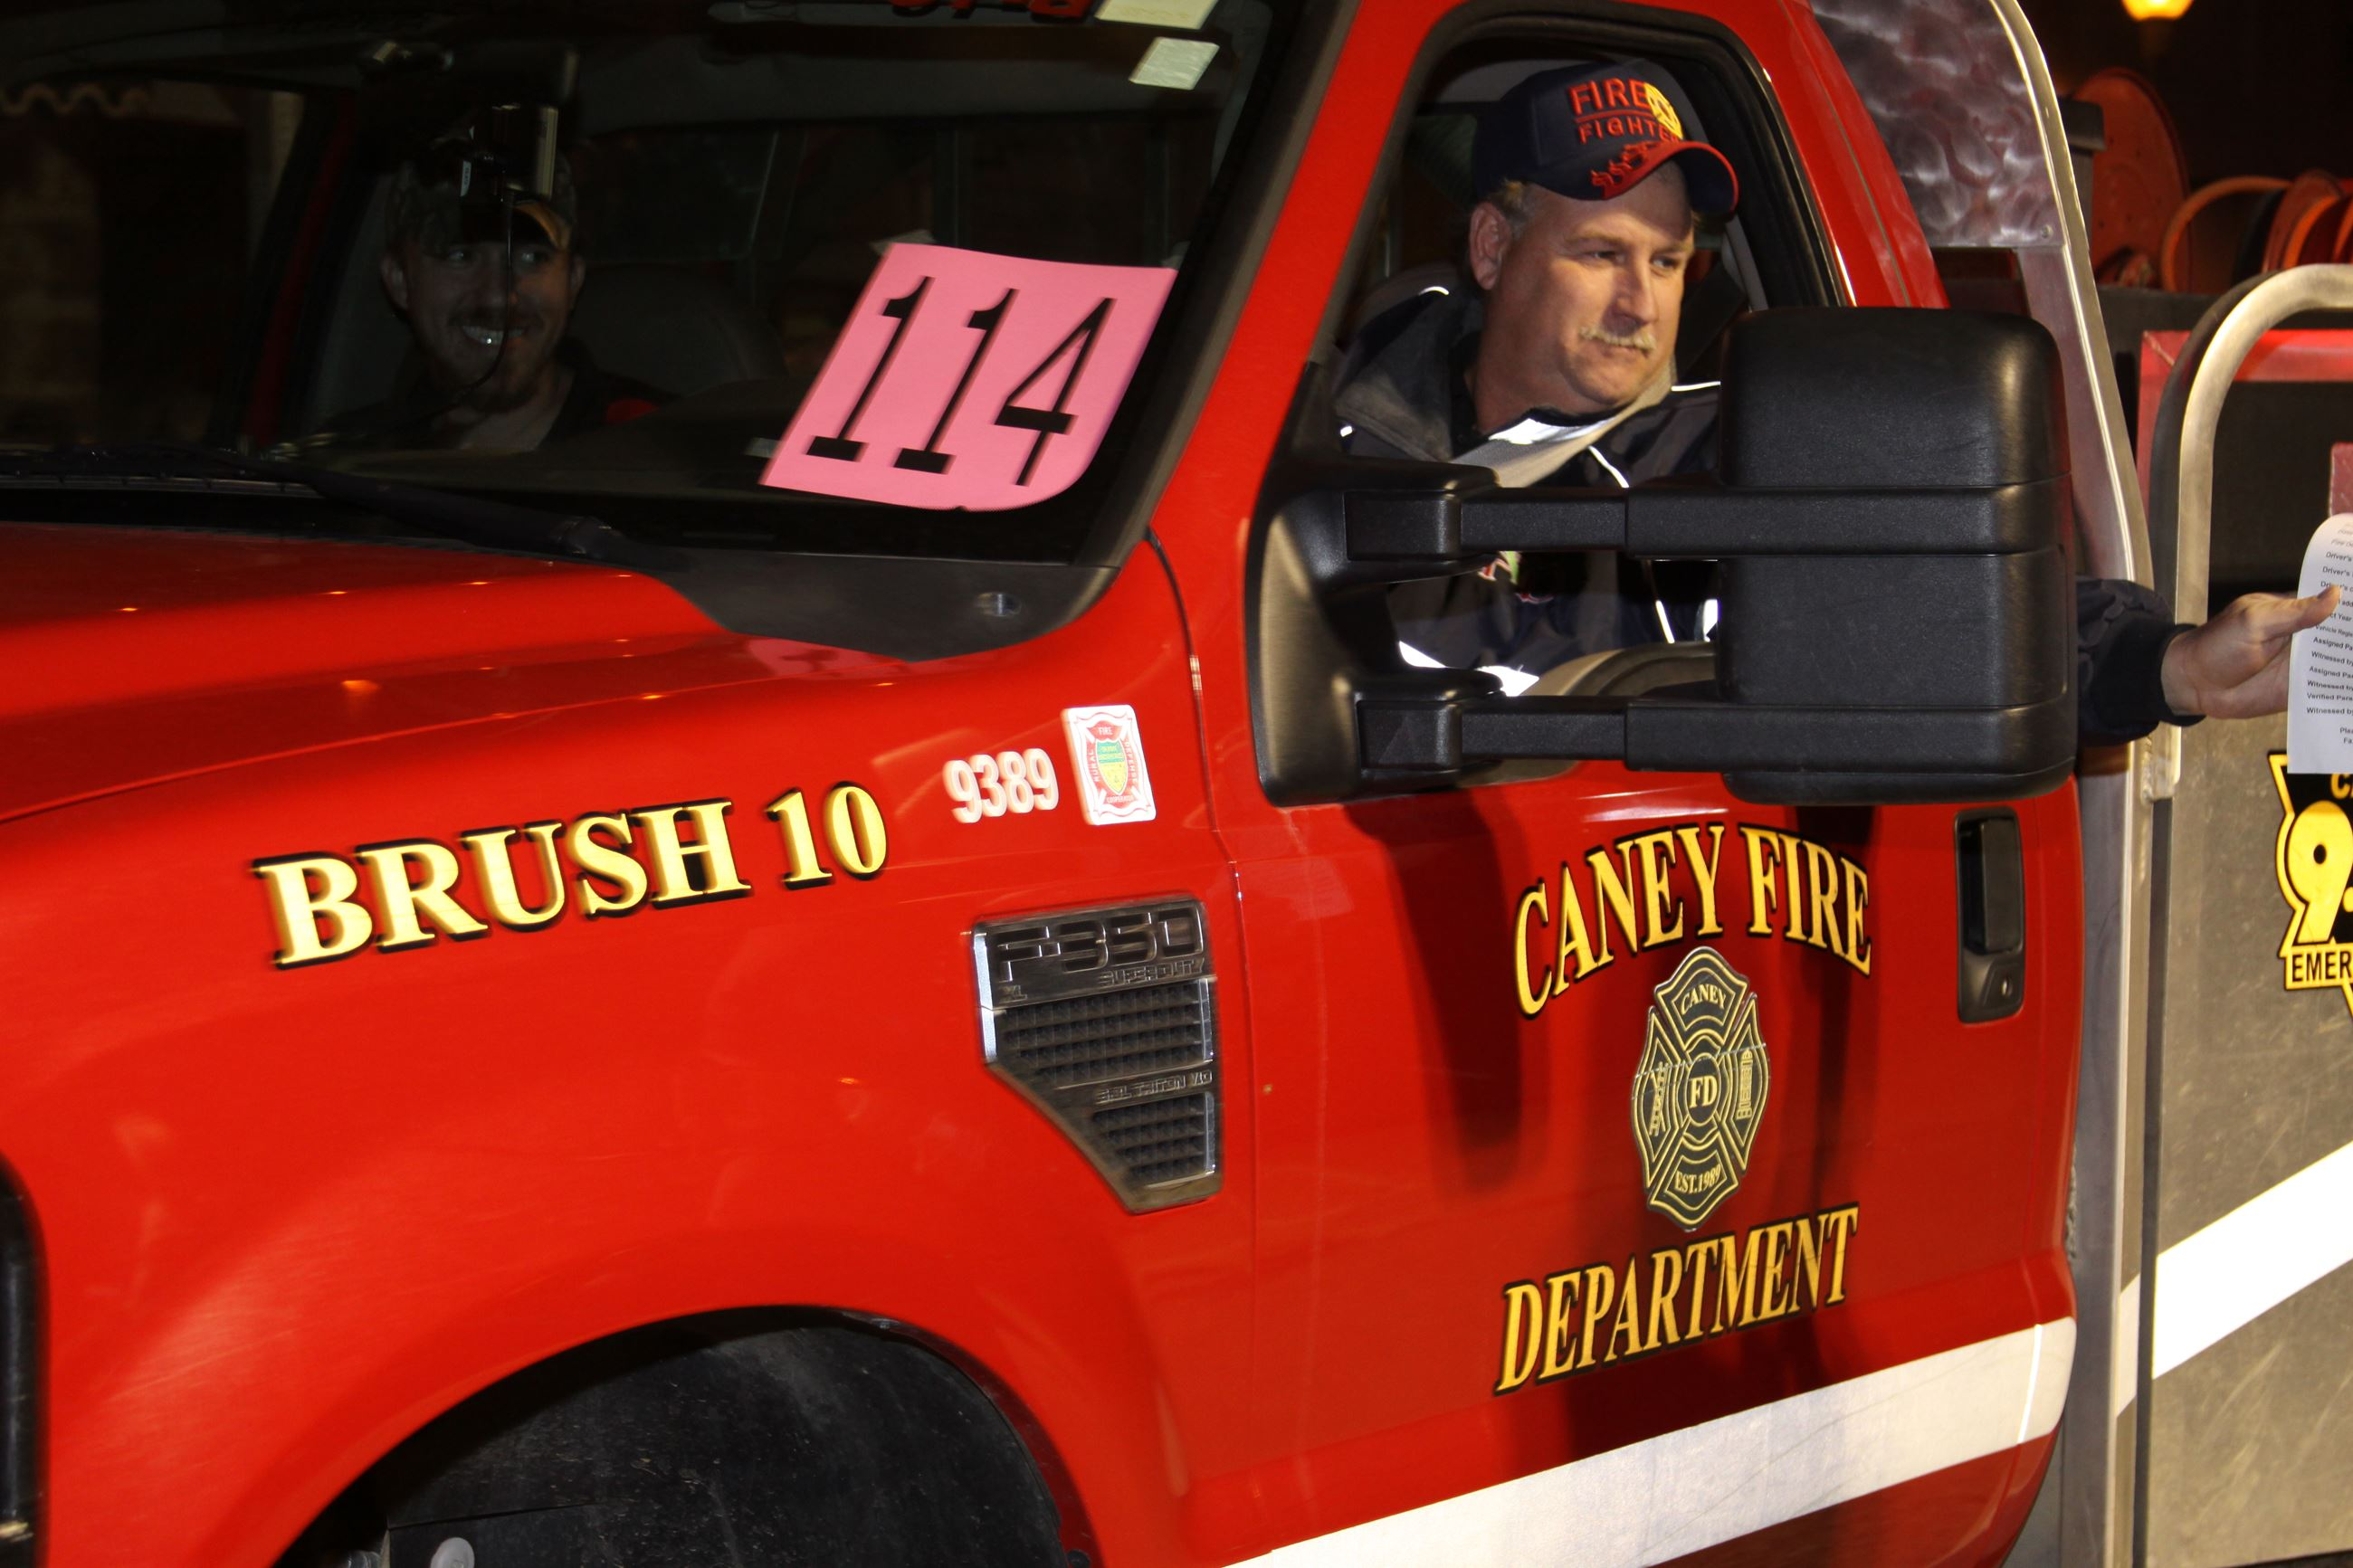 114 - Caney Fire Department